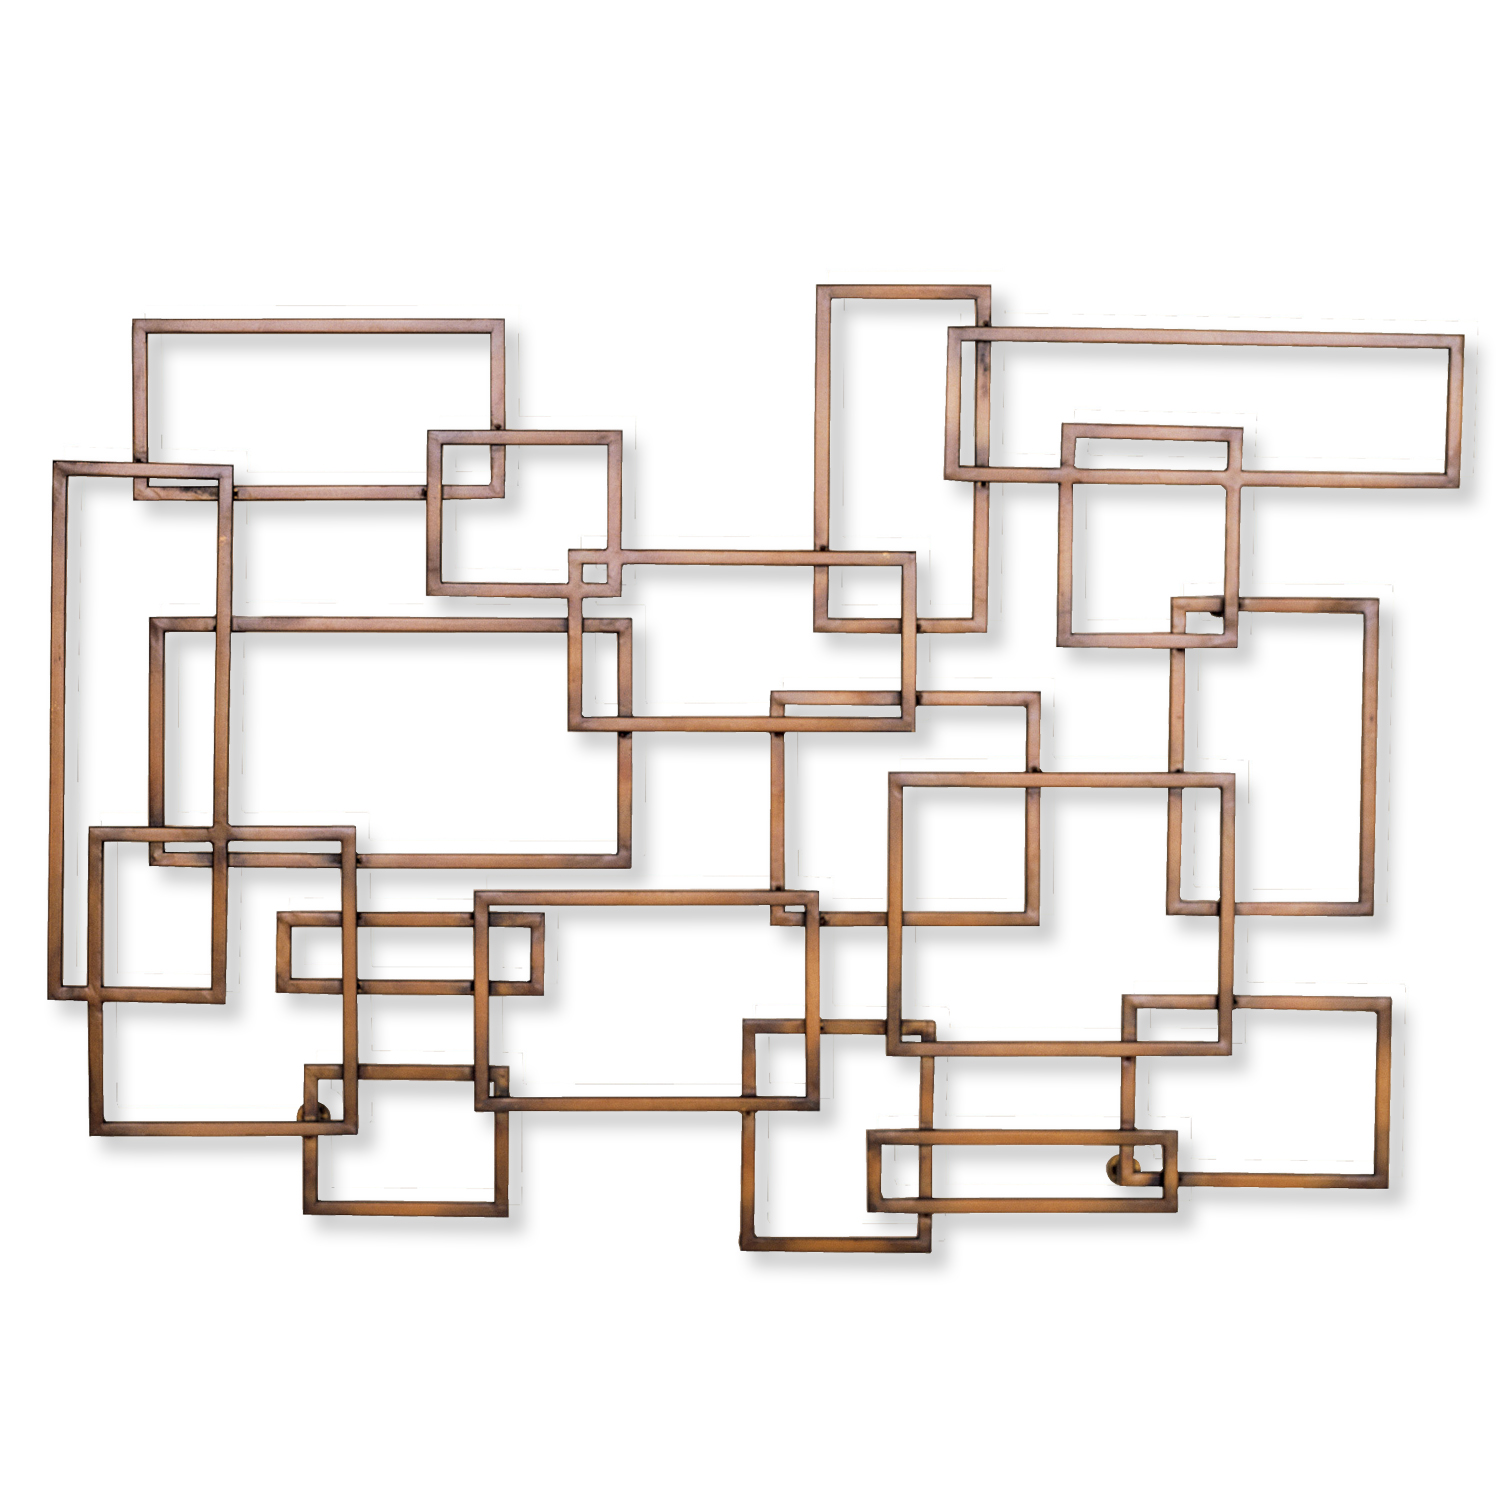 Geometric Metal Wall Art 2513 | geometric wall decor – welcome home accents